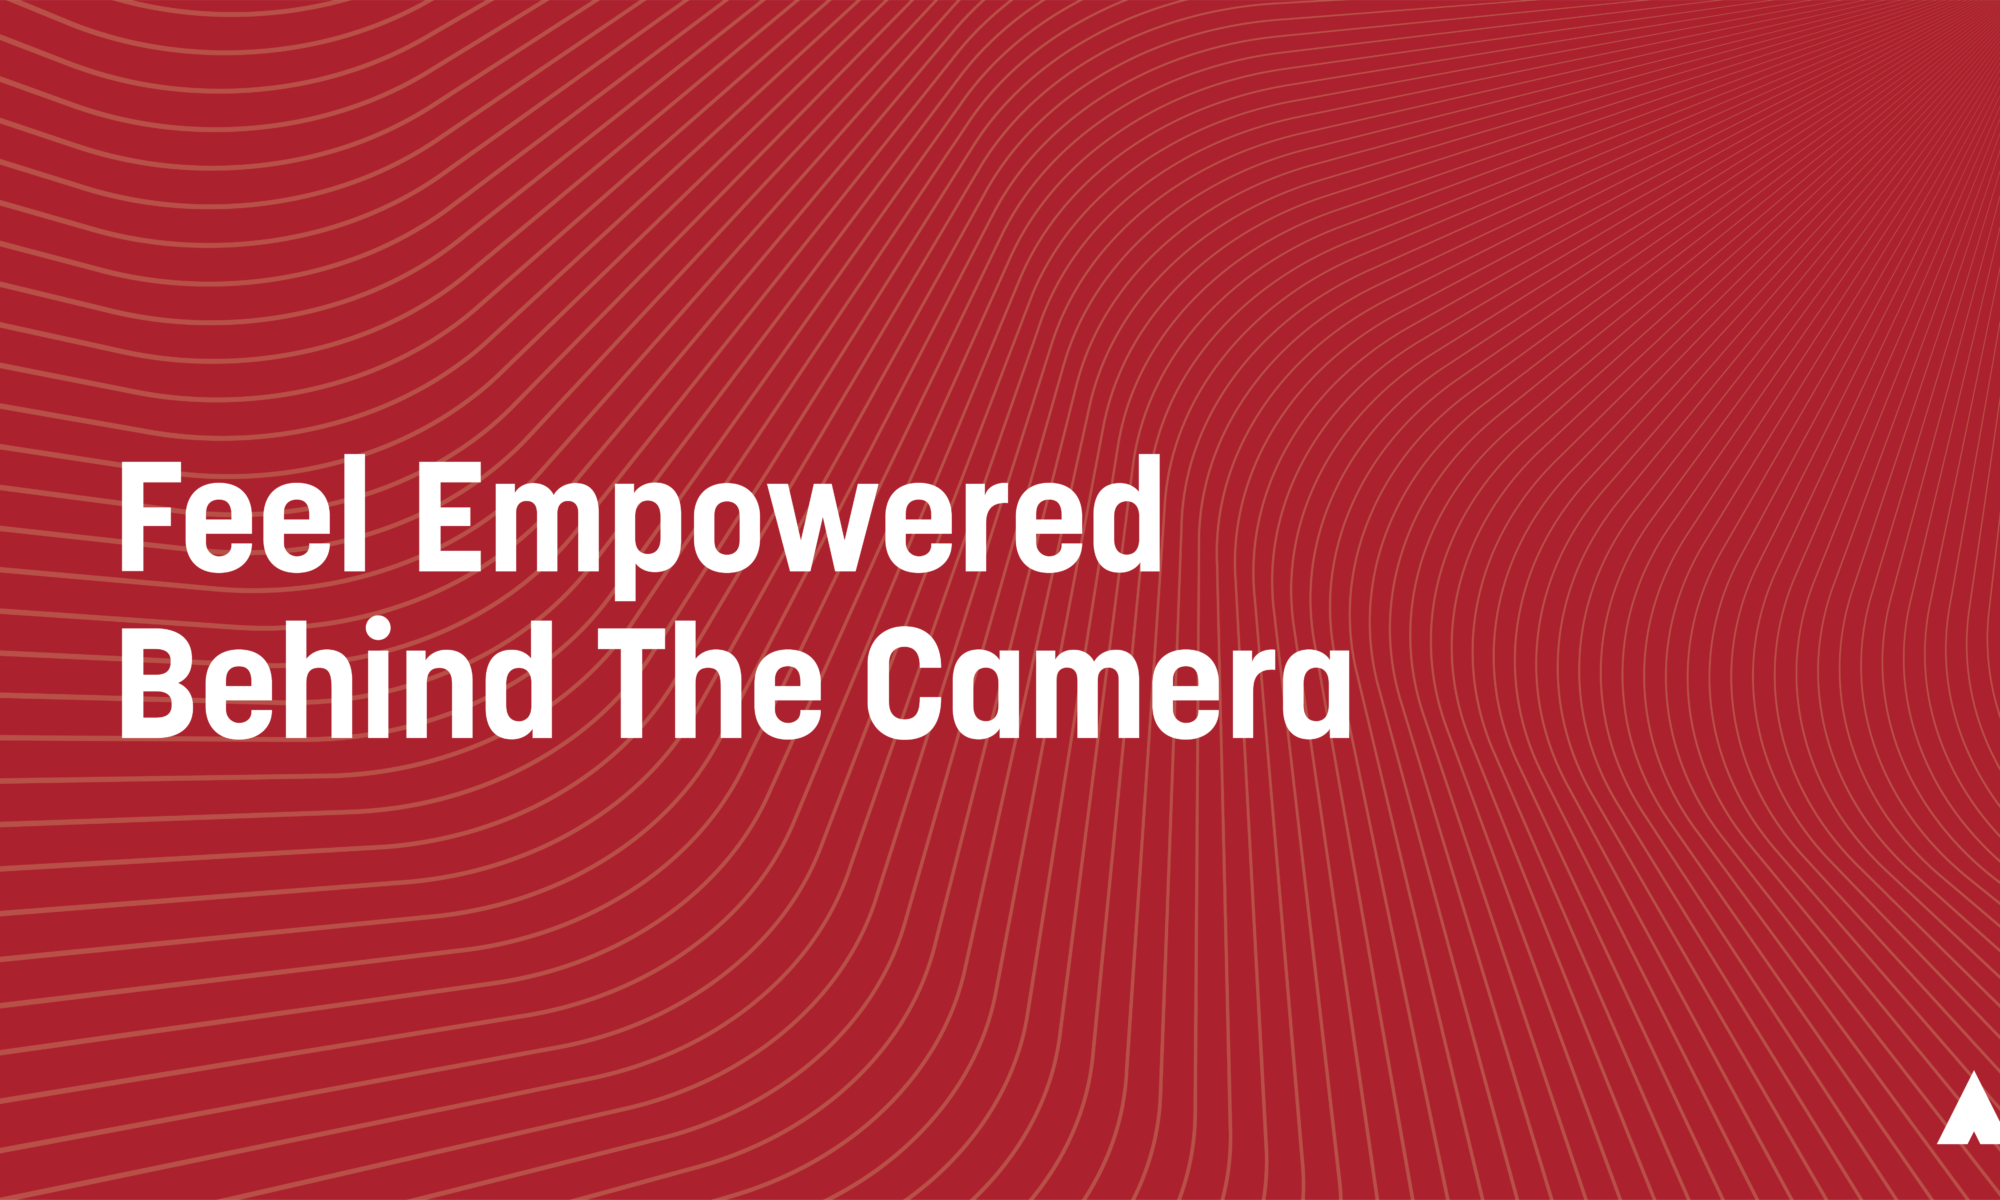 Feel Empowered Behind The Camera